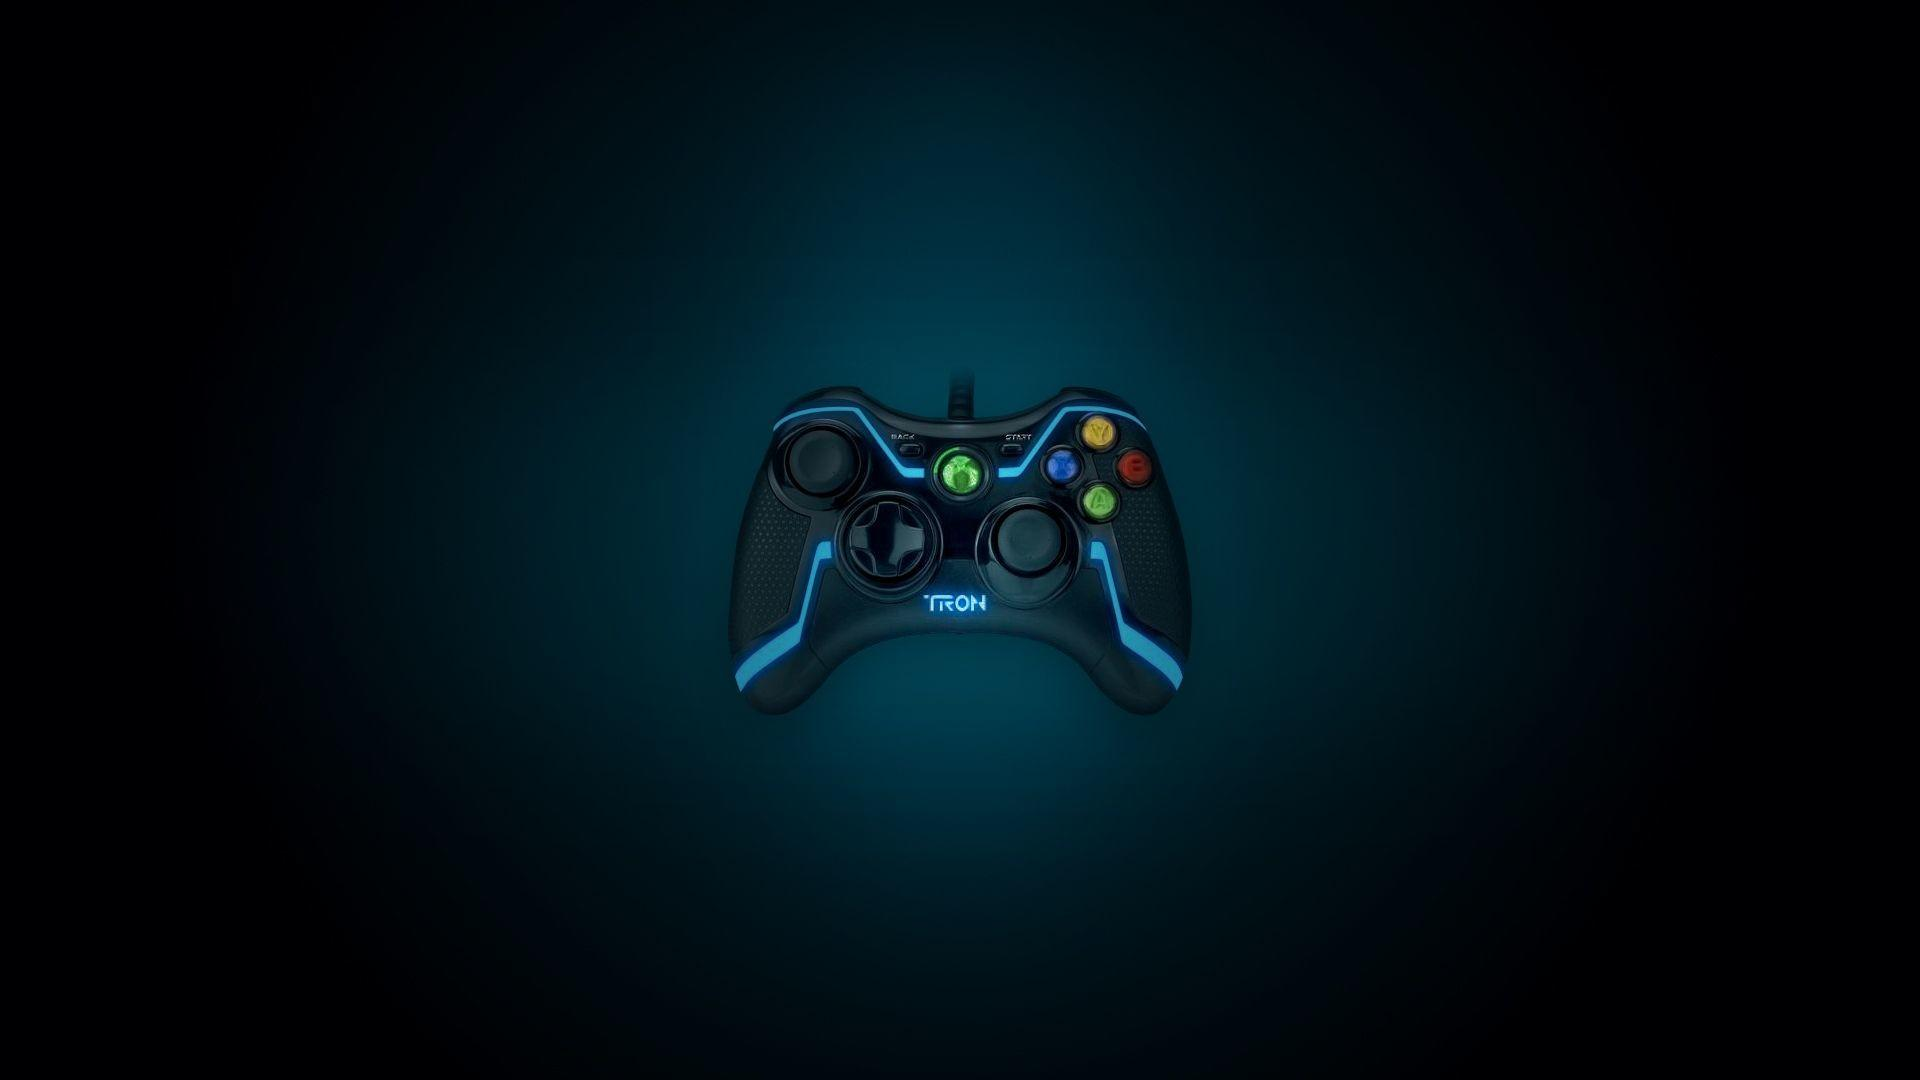 73+ Game Controller Wallpapers